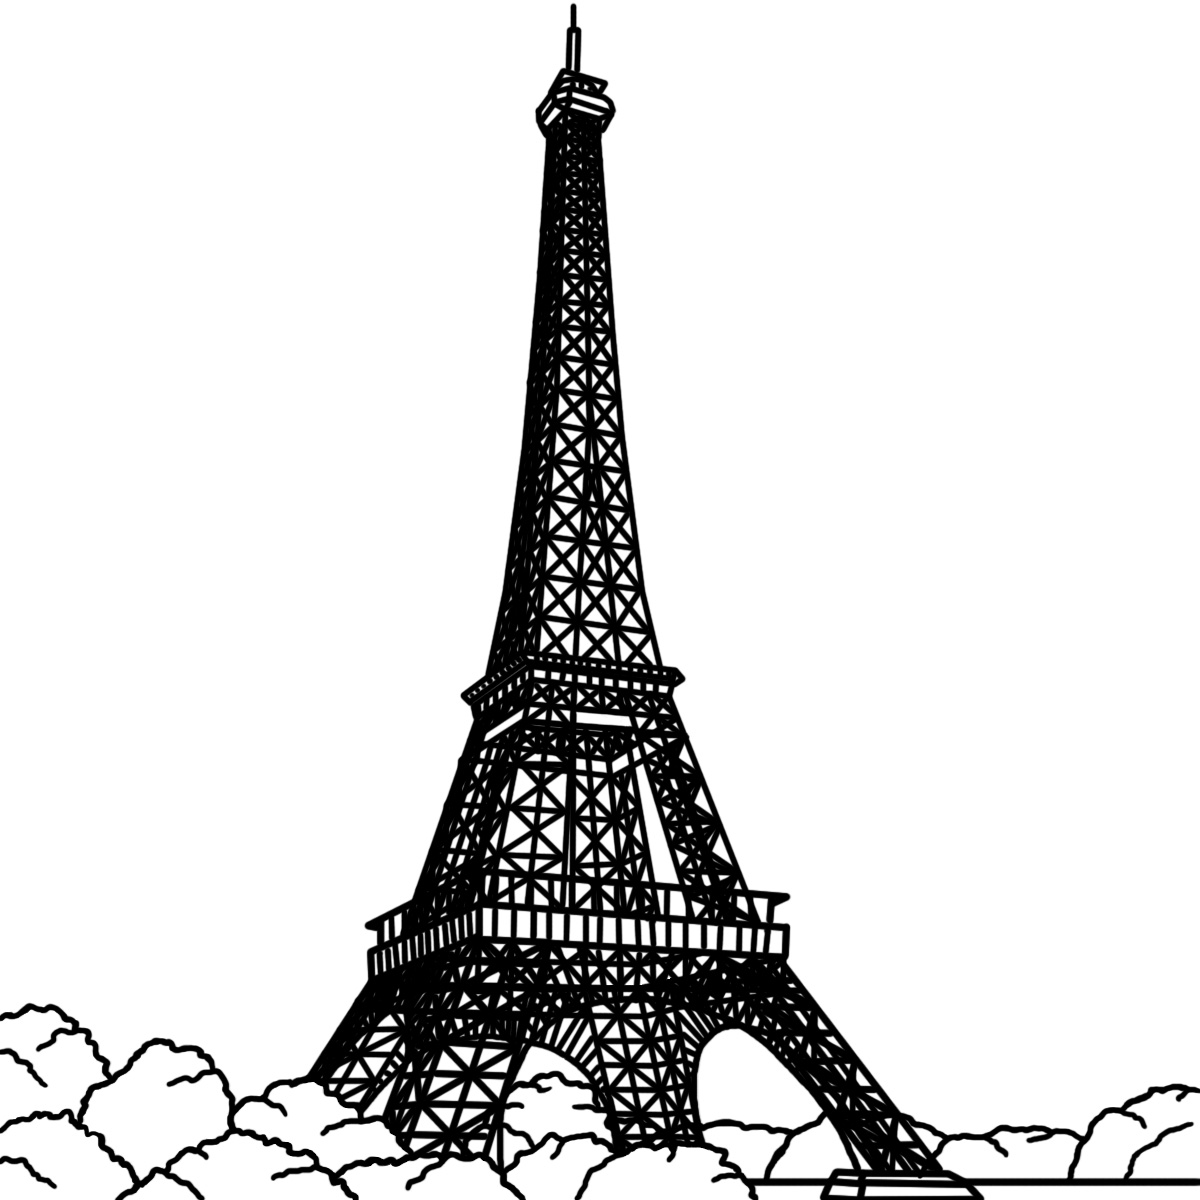 Eiffel Tower clipart #7, Download drawings